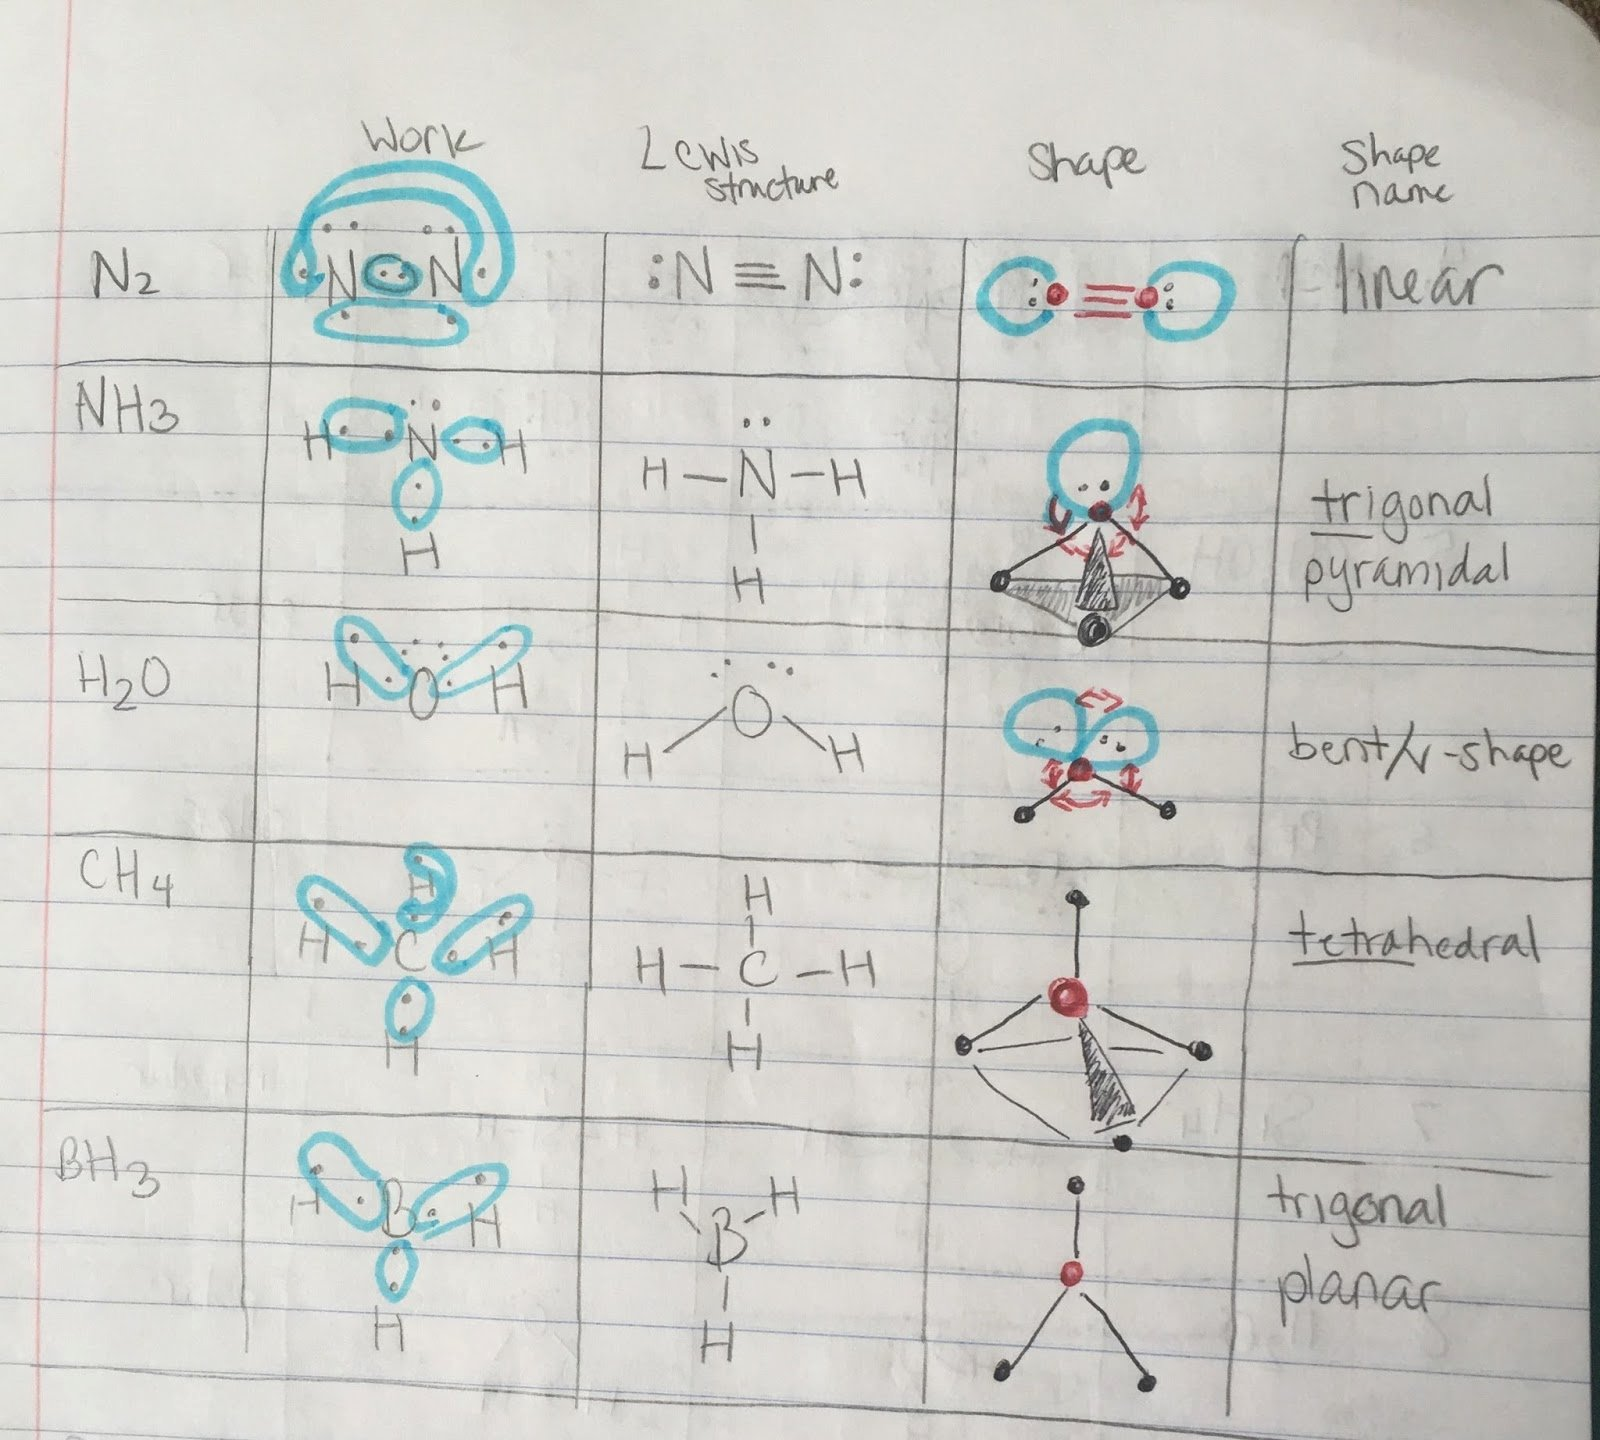 Drawing Lewis Structures Worksheet Fresh Molecular Structure Worksheet Answers the Best Worksheets